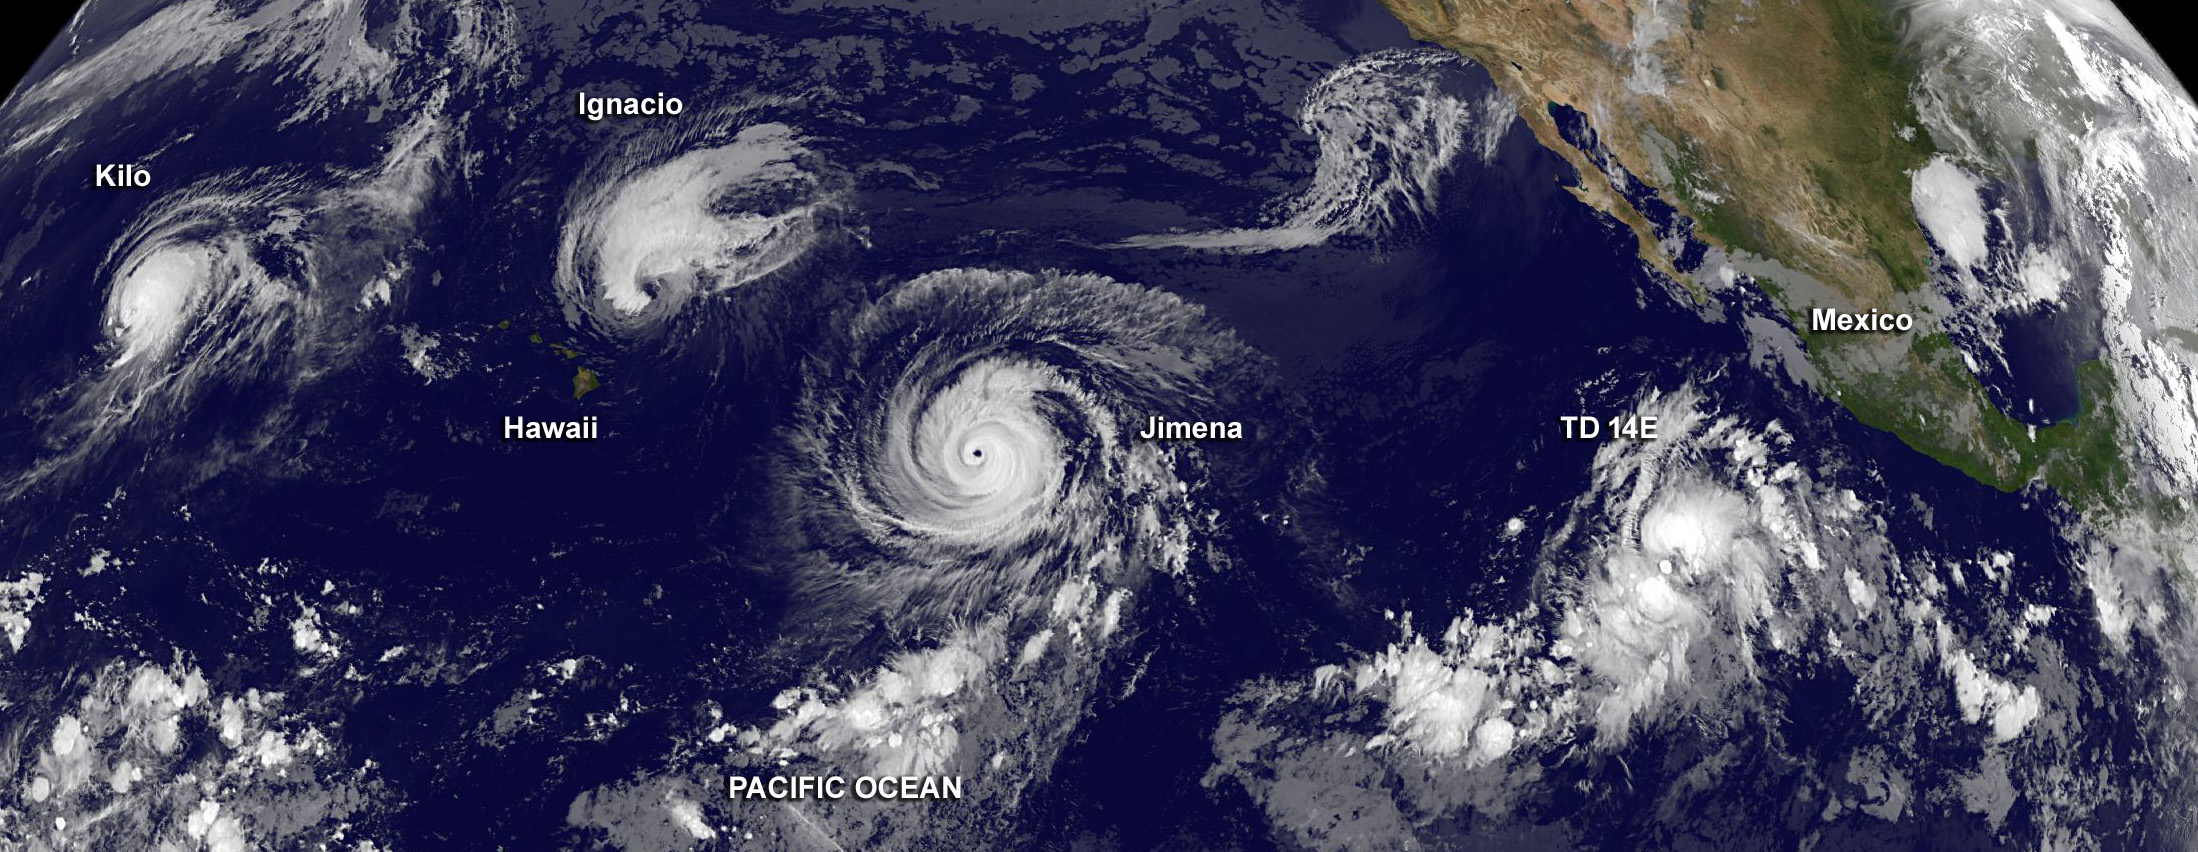 four tropical cyclones across the entire pacific ocean nasa. Black Bedroom Furniture Sets. Home Design Ideas